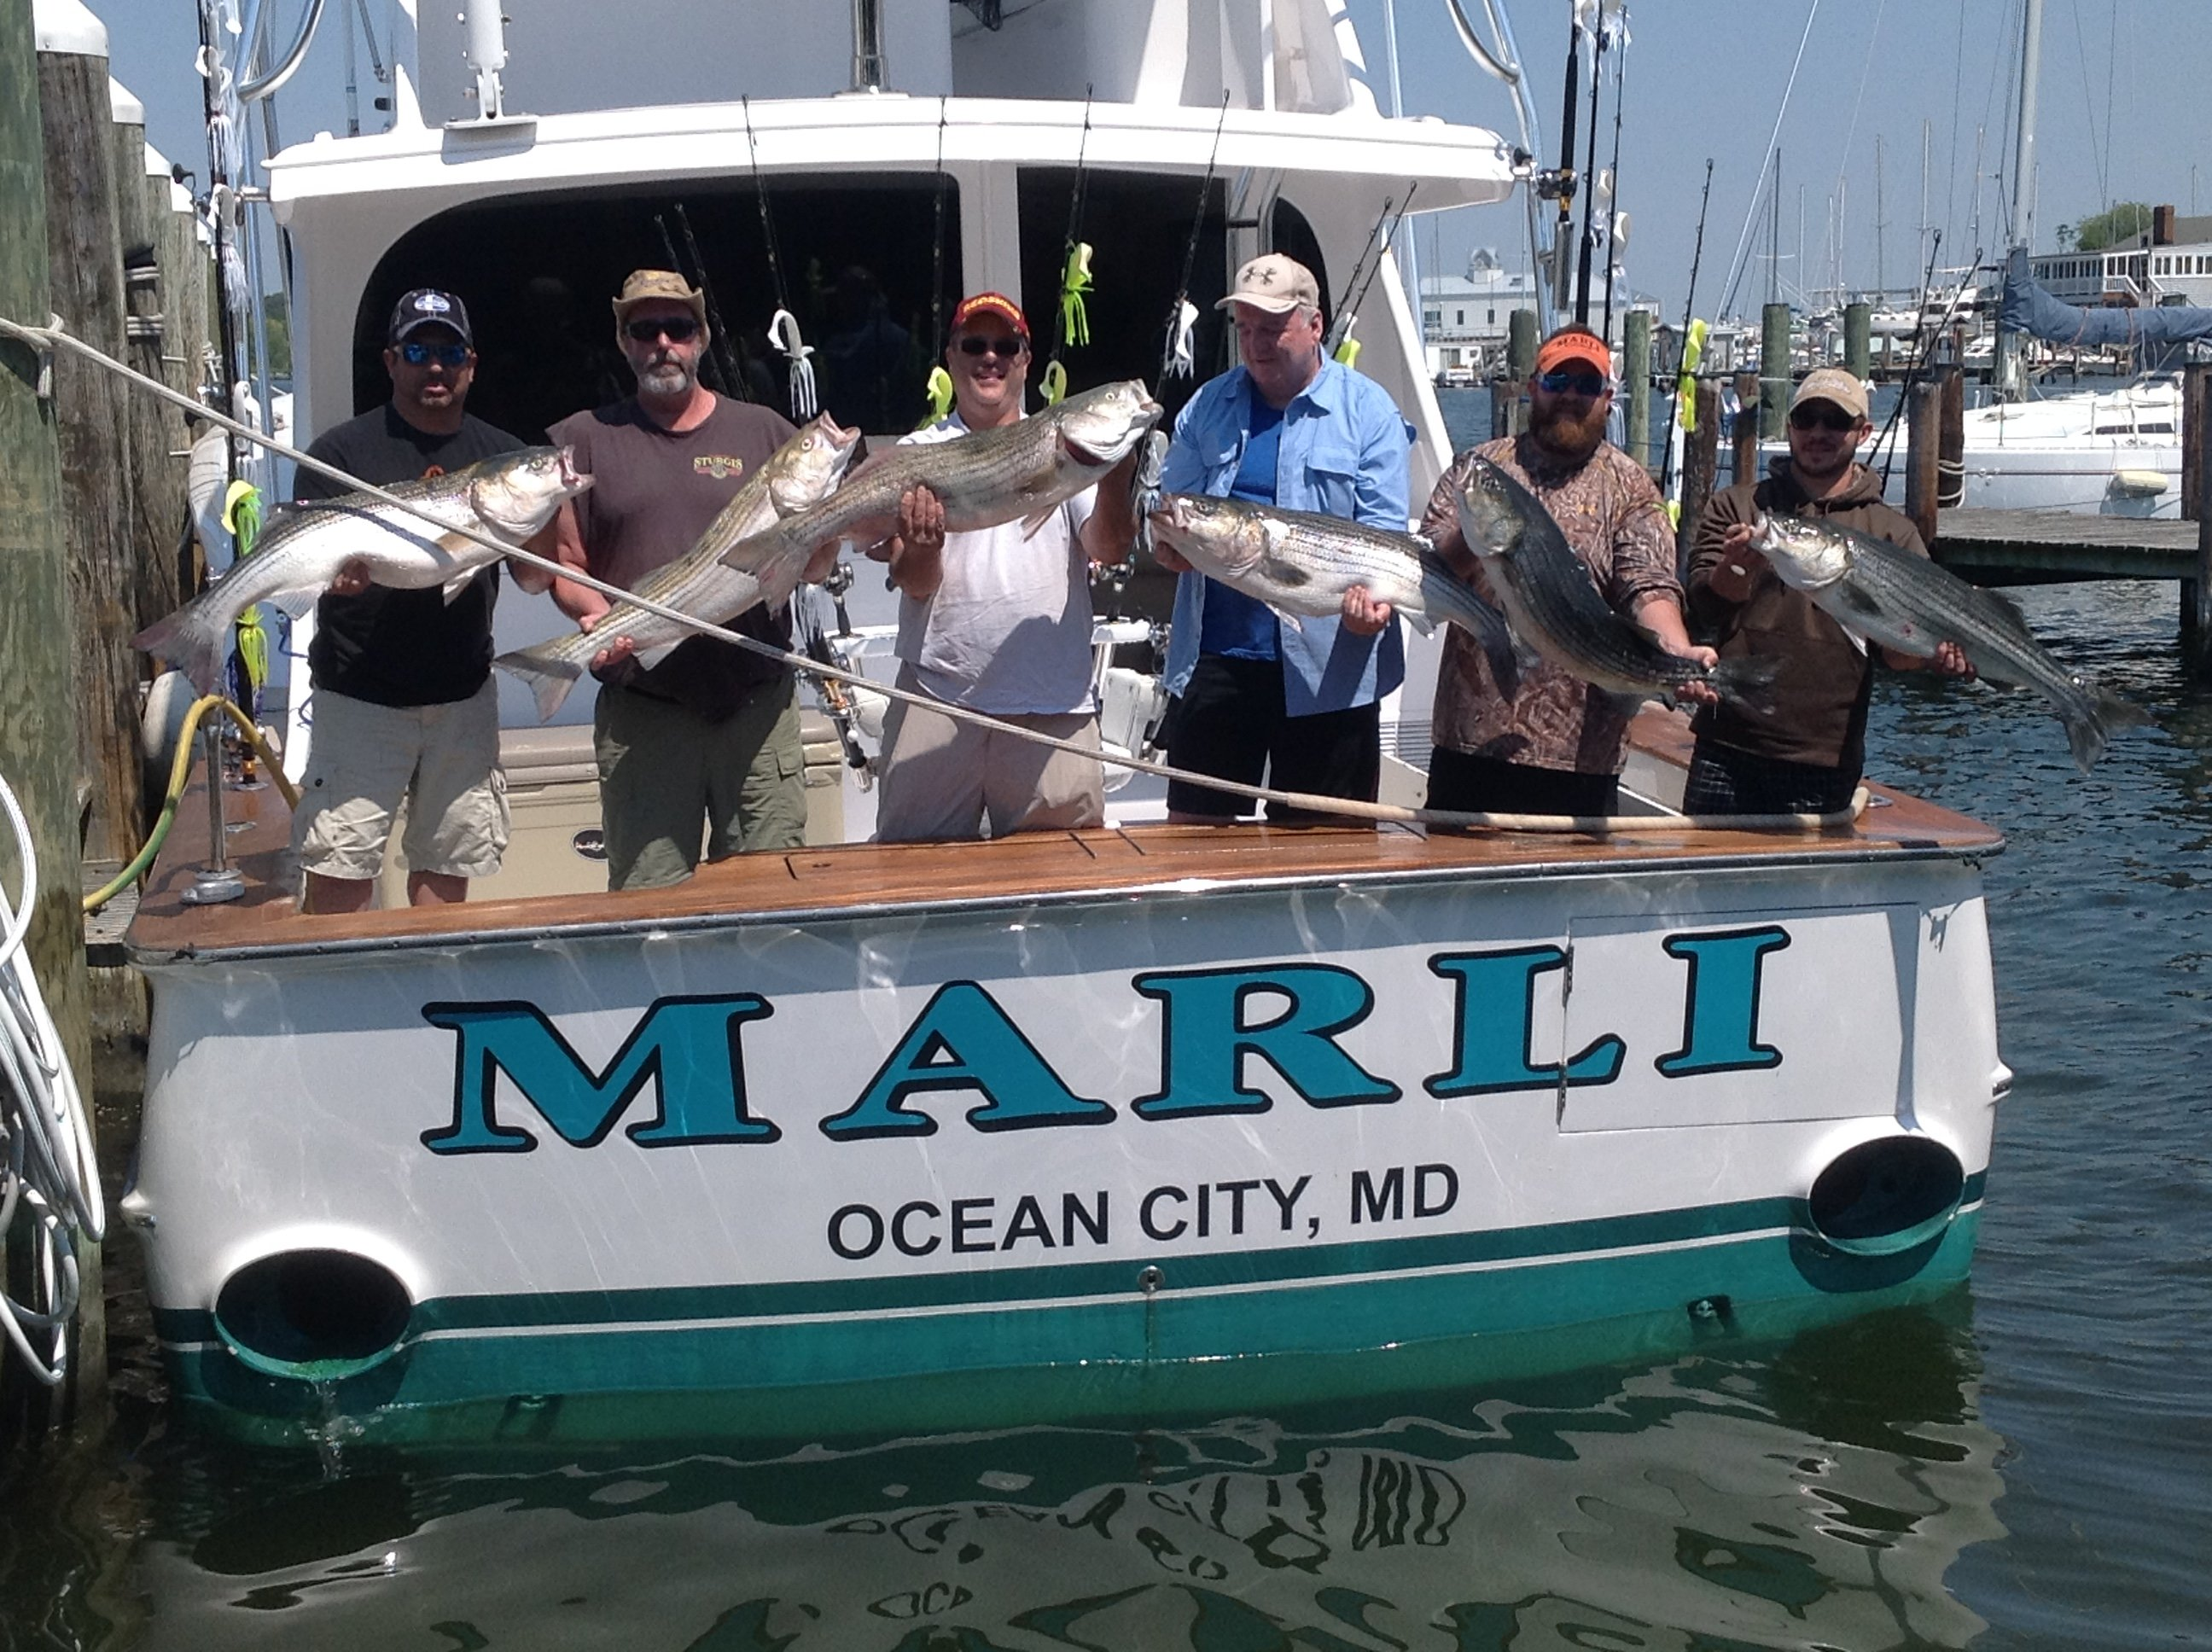 Slaying rockfish ocean city md fishing for Ocean city md fishing